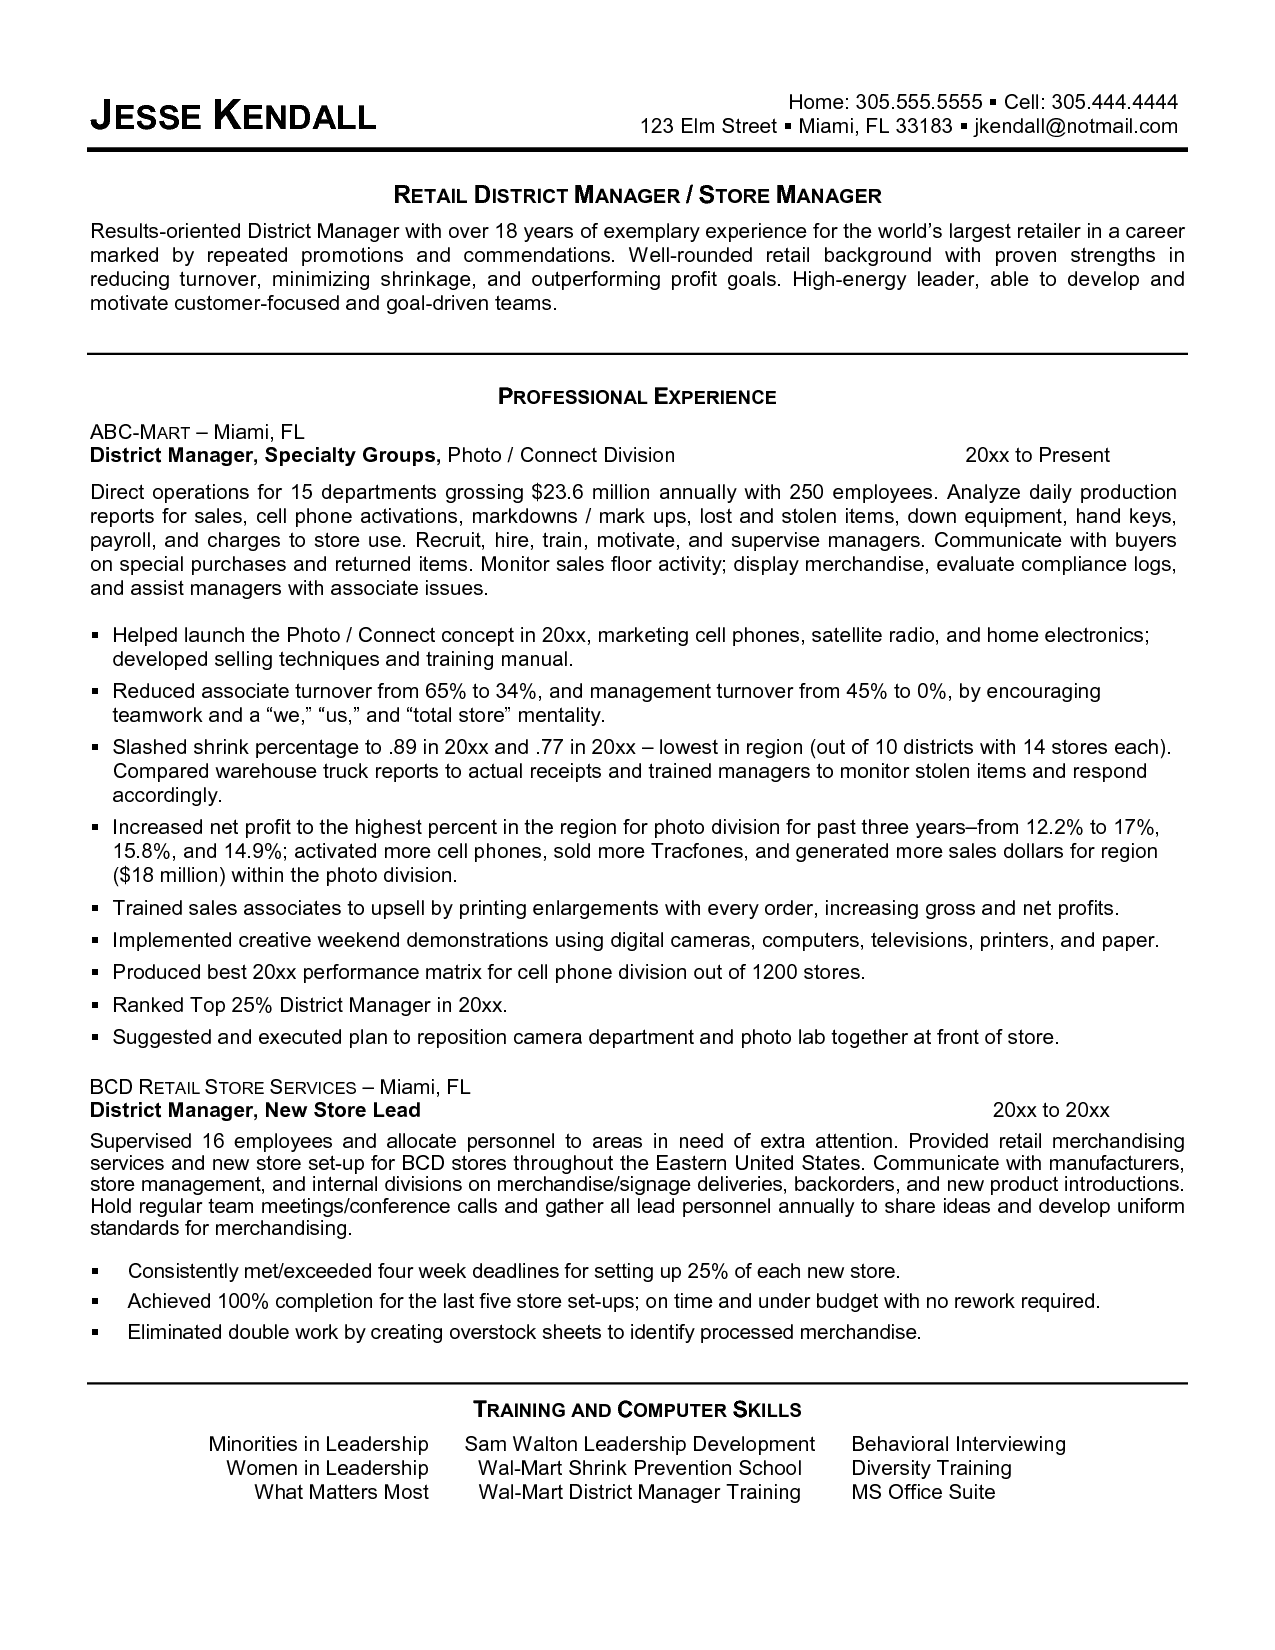 resume Results Driven Resume Example church secretary resume sample httpwww jobresume websitechurch websitechurch